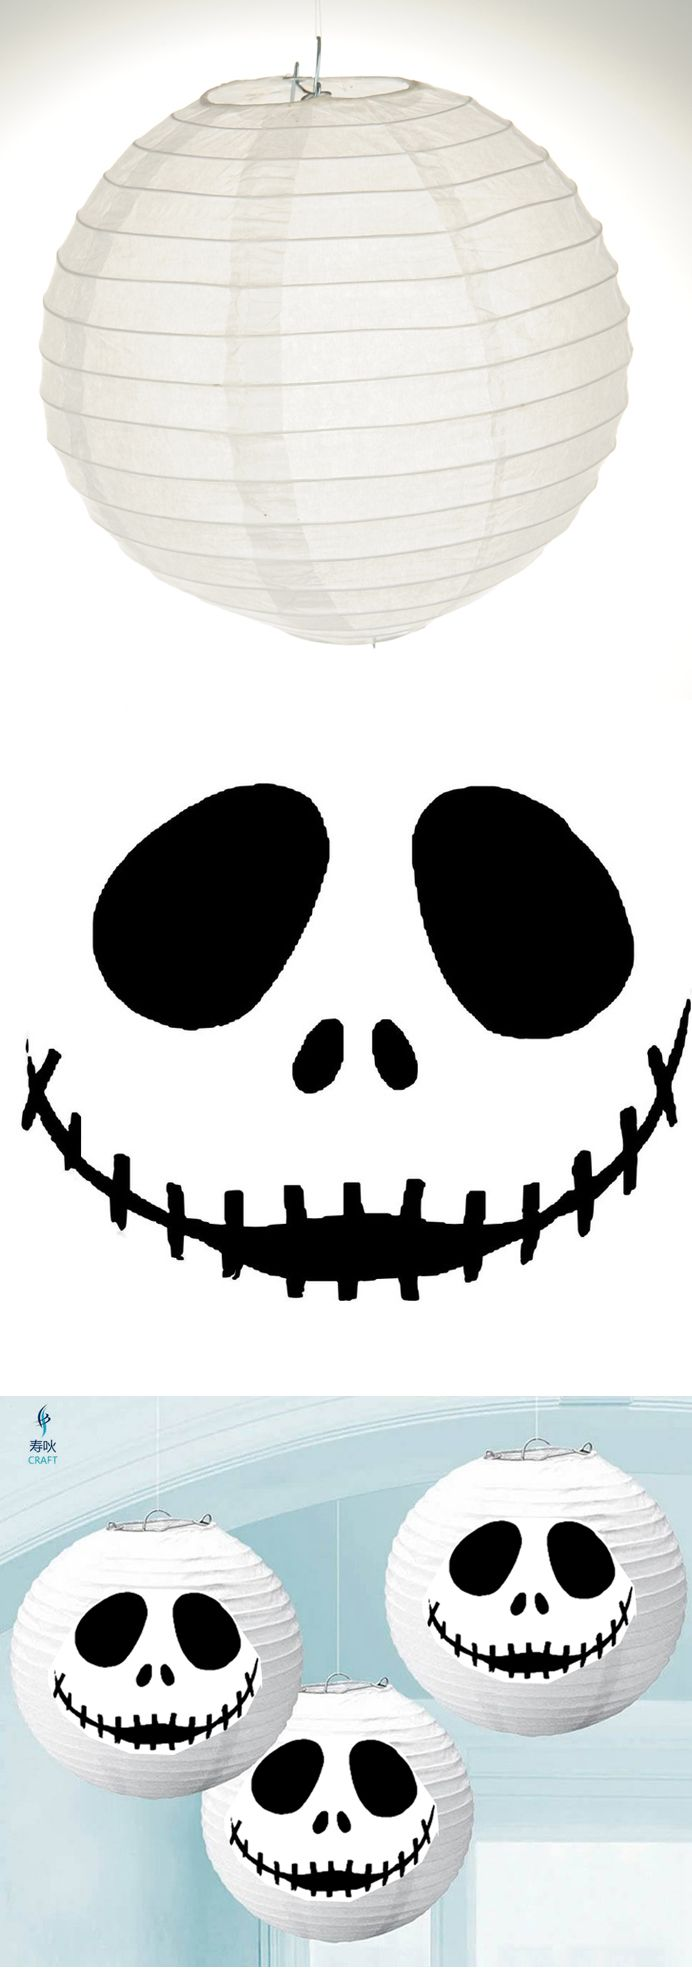 buy white paper lanterns at any party store print out jack skellington pumpkin carving pattern - Halloween Decoration Stores Near Me